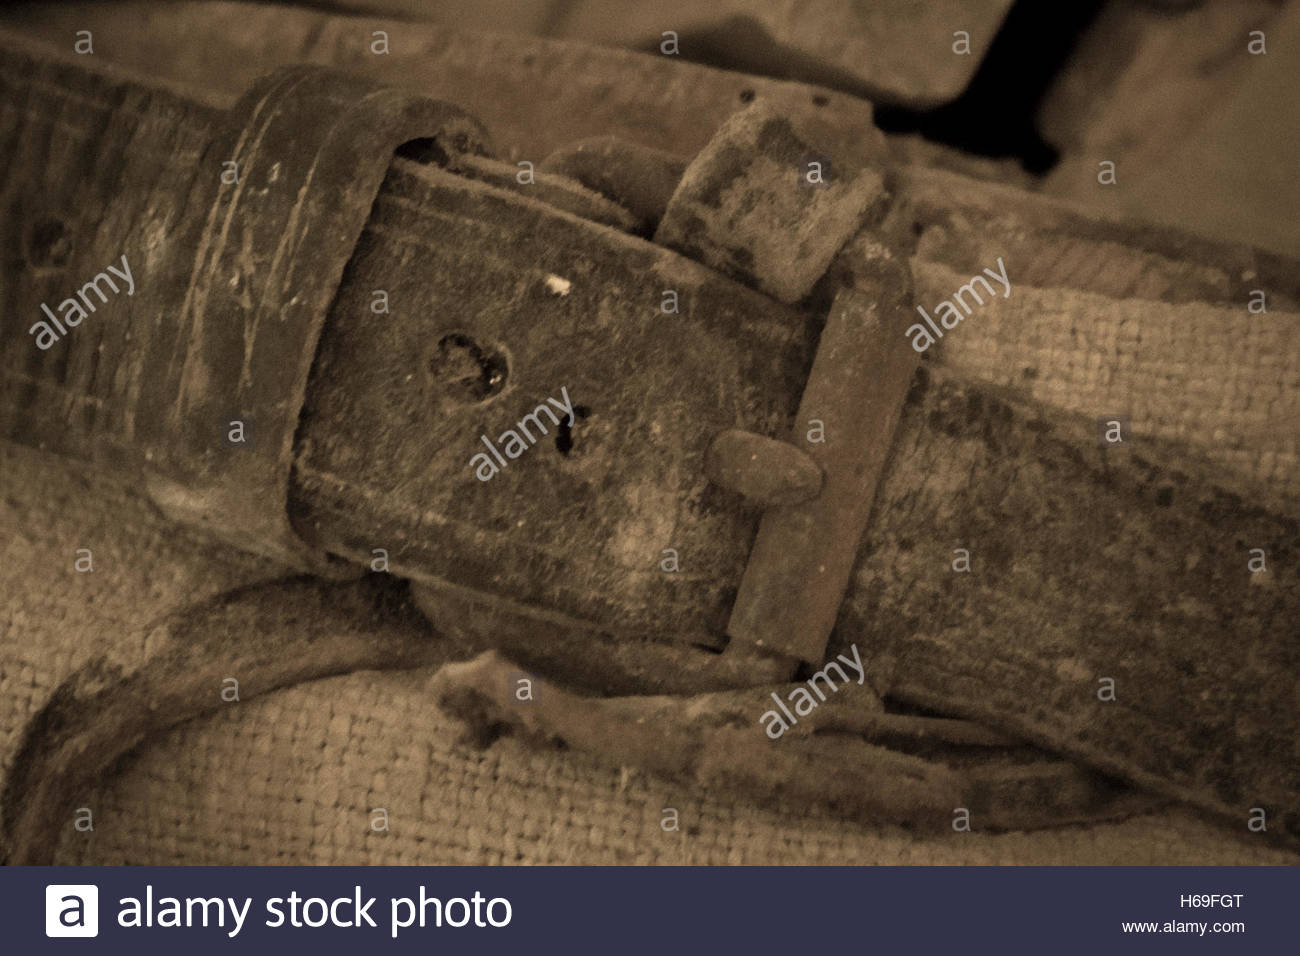 Old leather strap with buckle poorly maintained - Stock Image